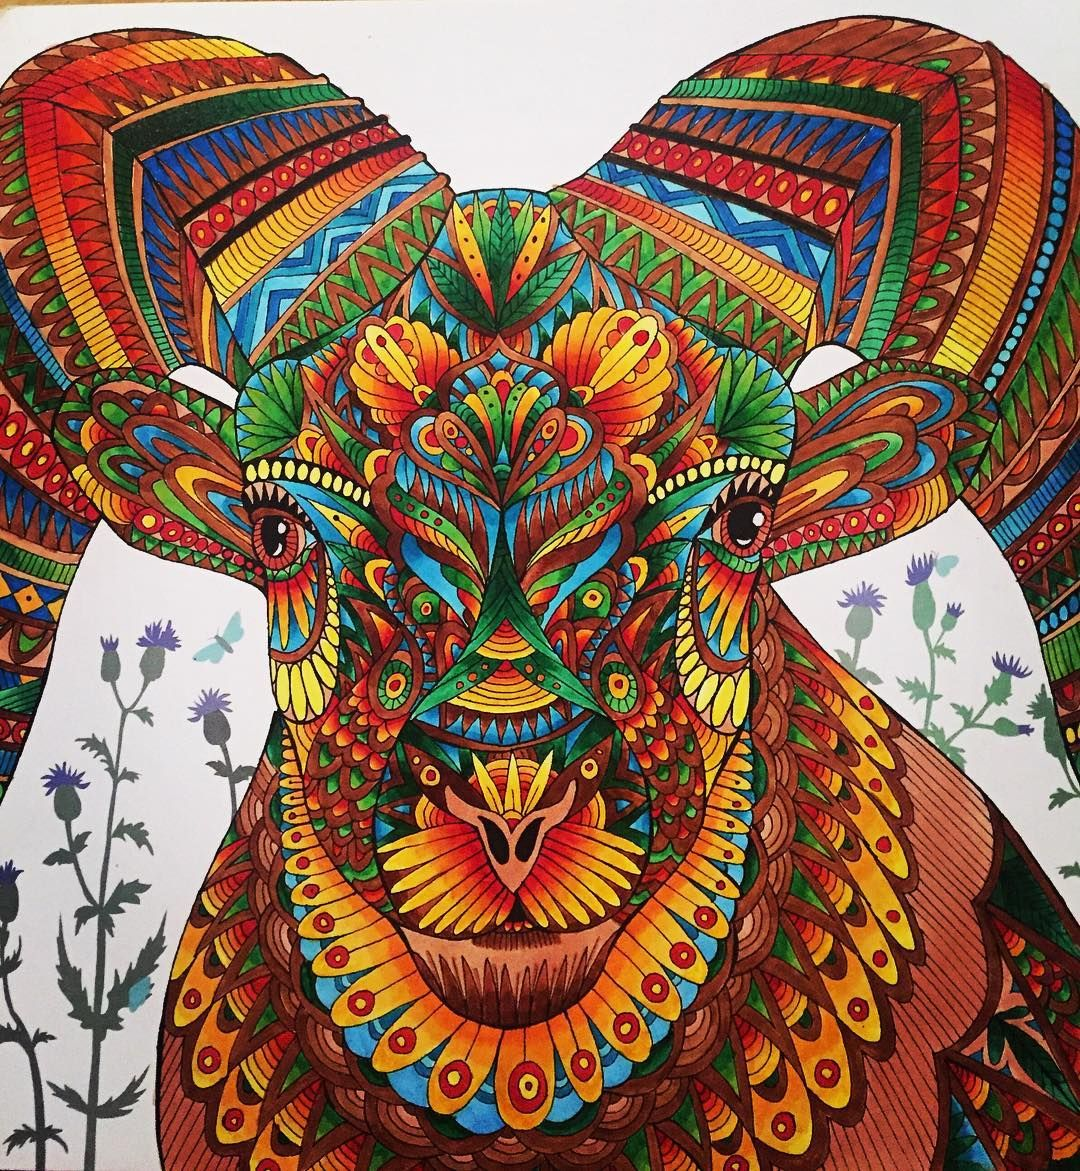 Hayley Gilbert On Instagram Big Horn Sheep Themenagerie Bighornsheep Adultcolouring C Animal Coloring Books Millie Marotta Coloring Book Color Pencil Art